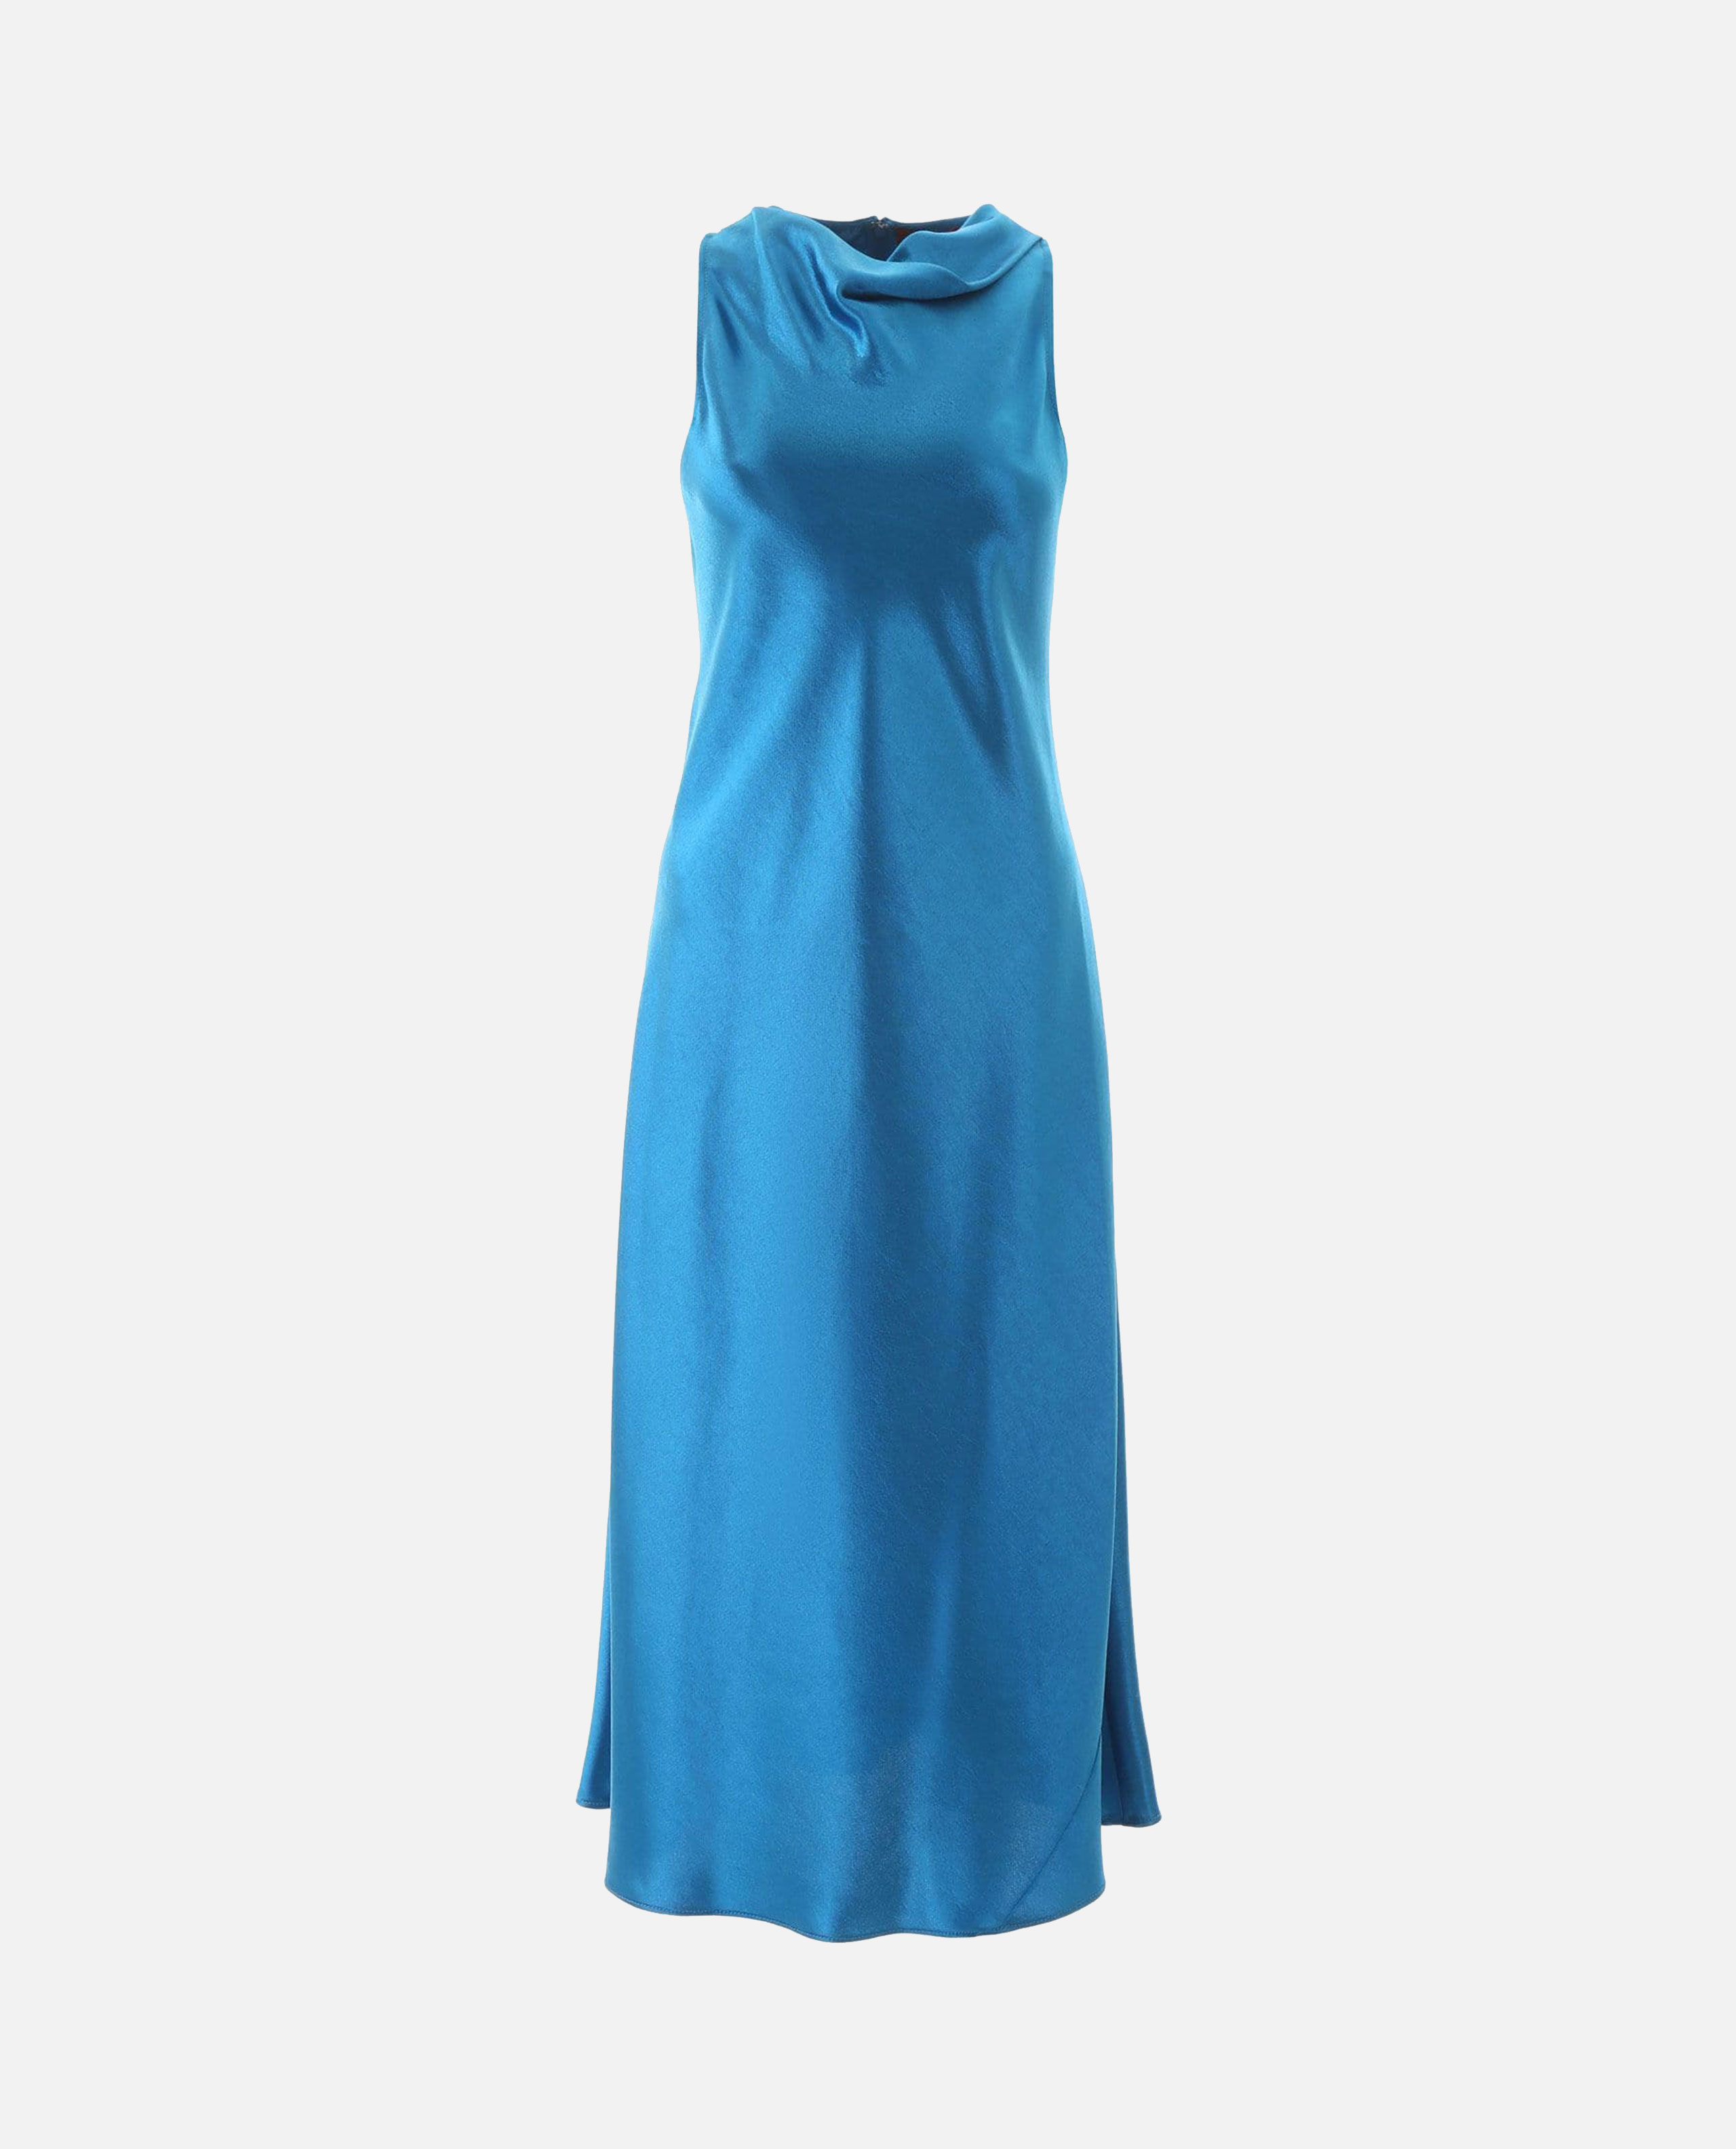 Sies Marjan Andy Midi Dress In Azure